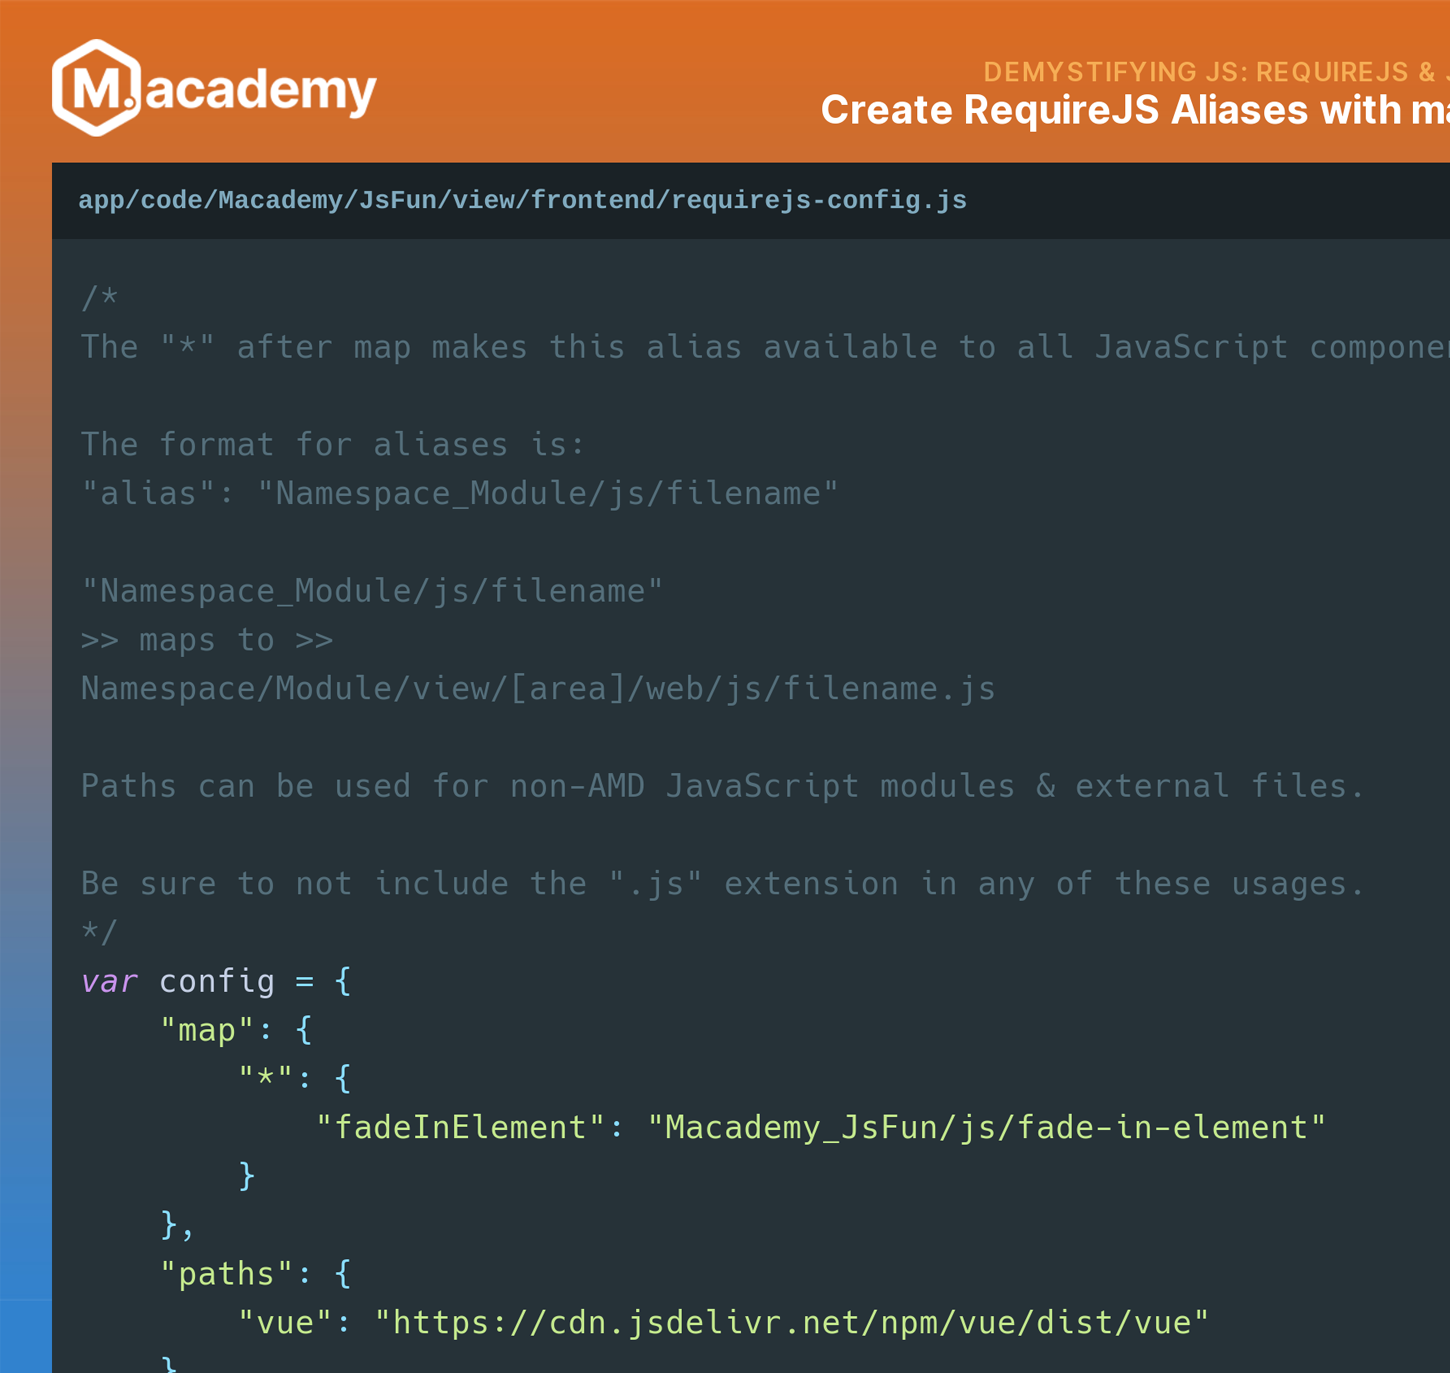 Snippet for RequireJS aliases